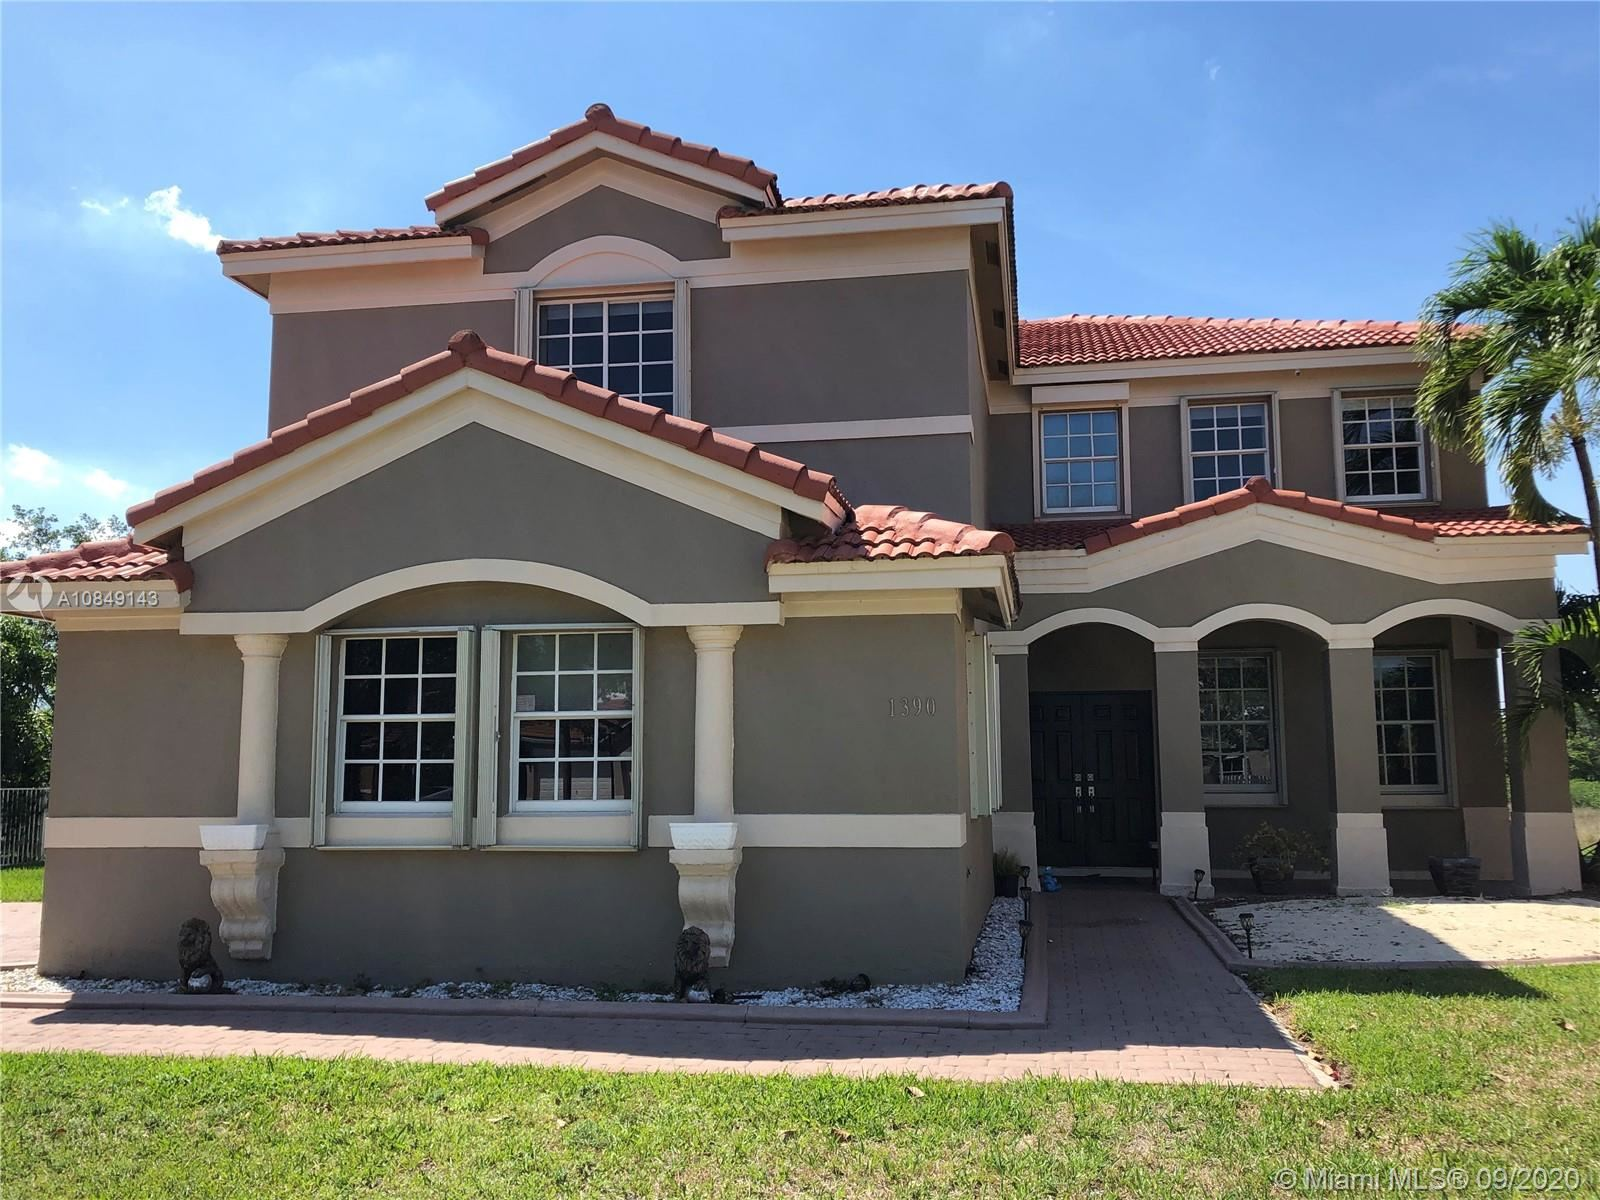 1390 NW 166th Ave, Pembroke Pines, FL 33028 - #: A10849143